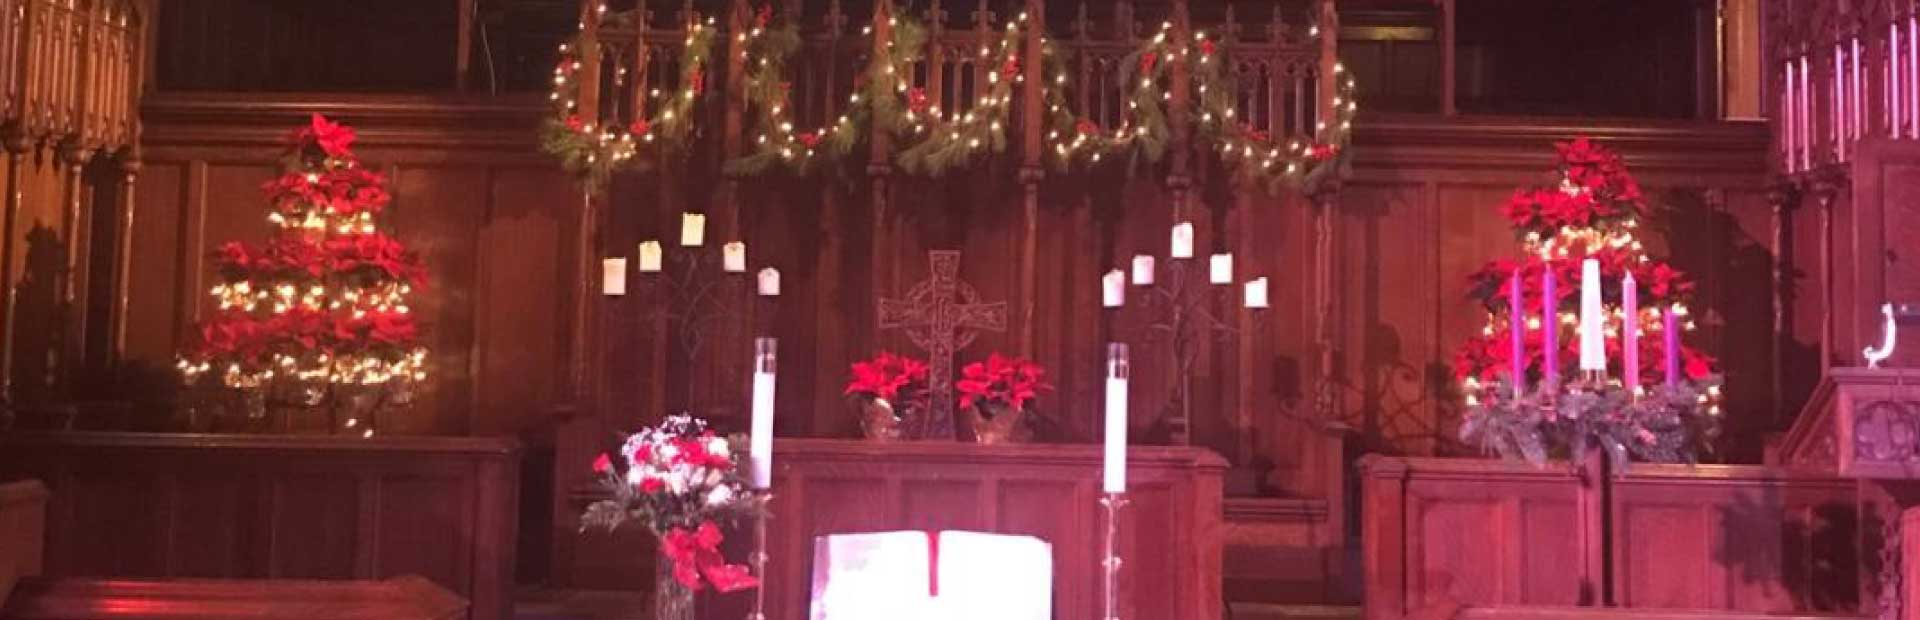 poinsettia display for altar